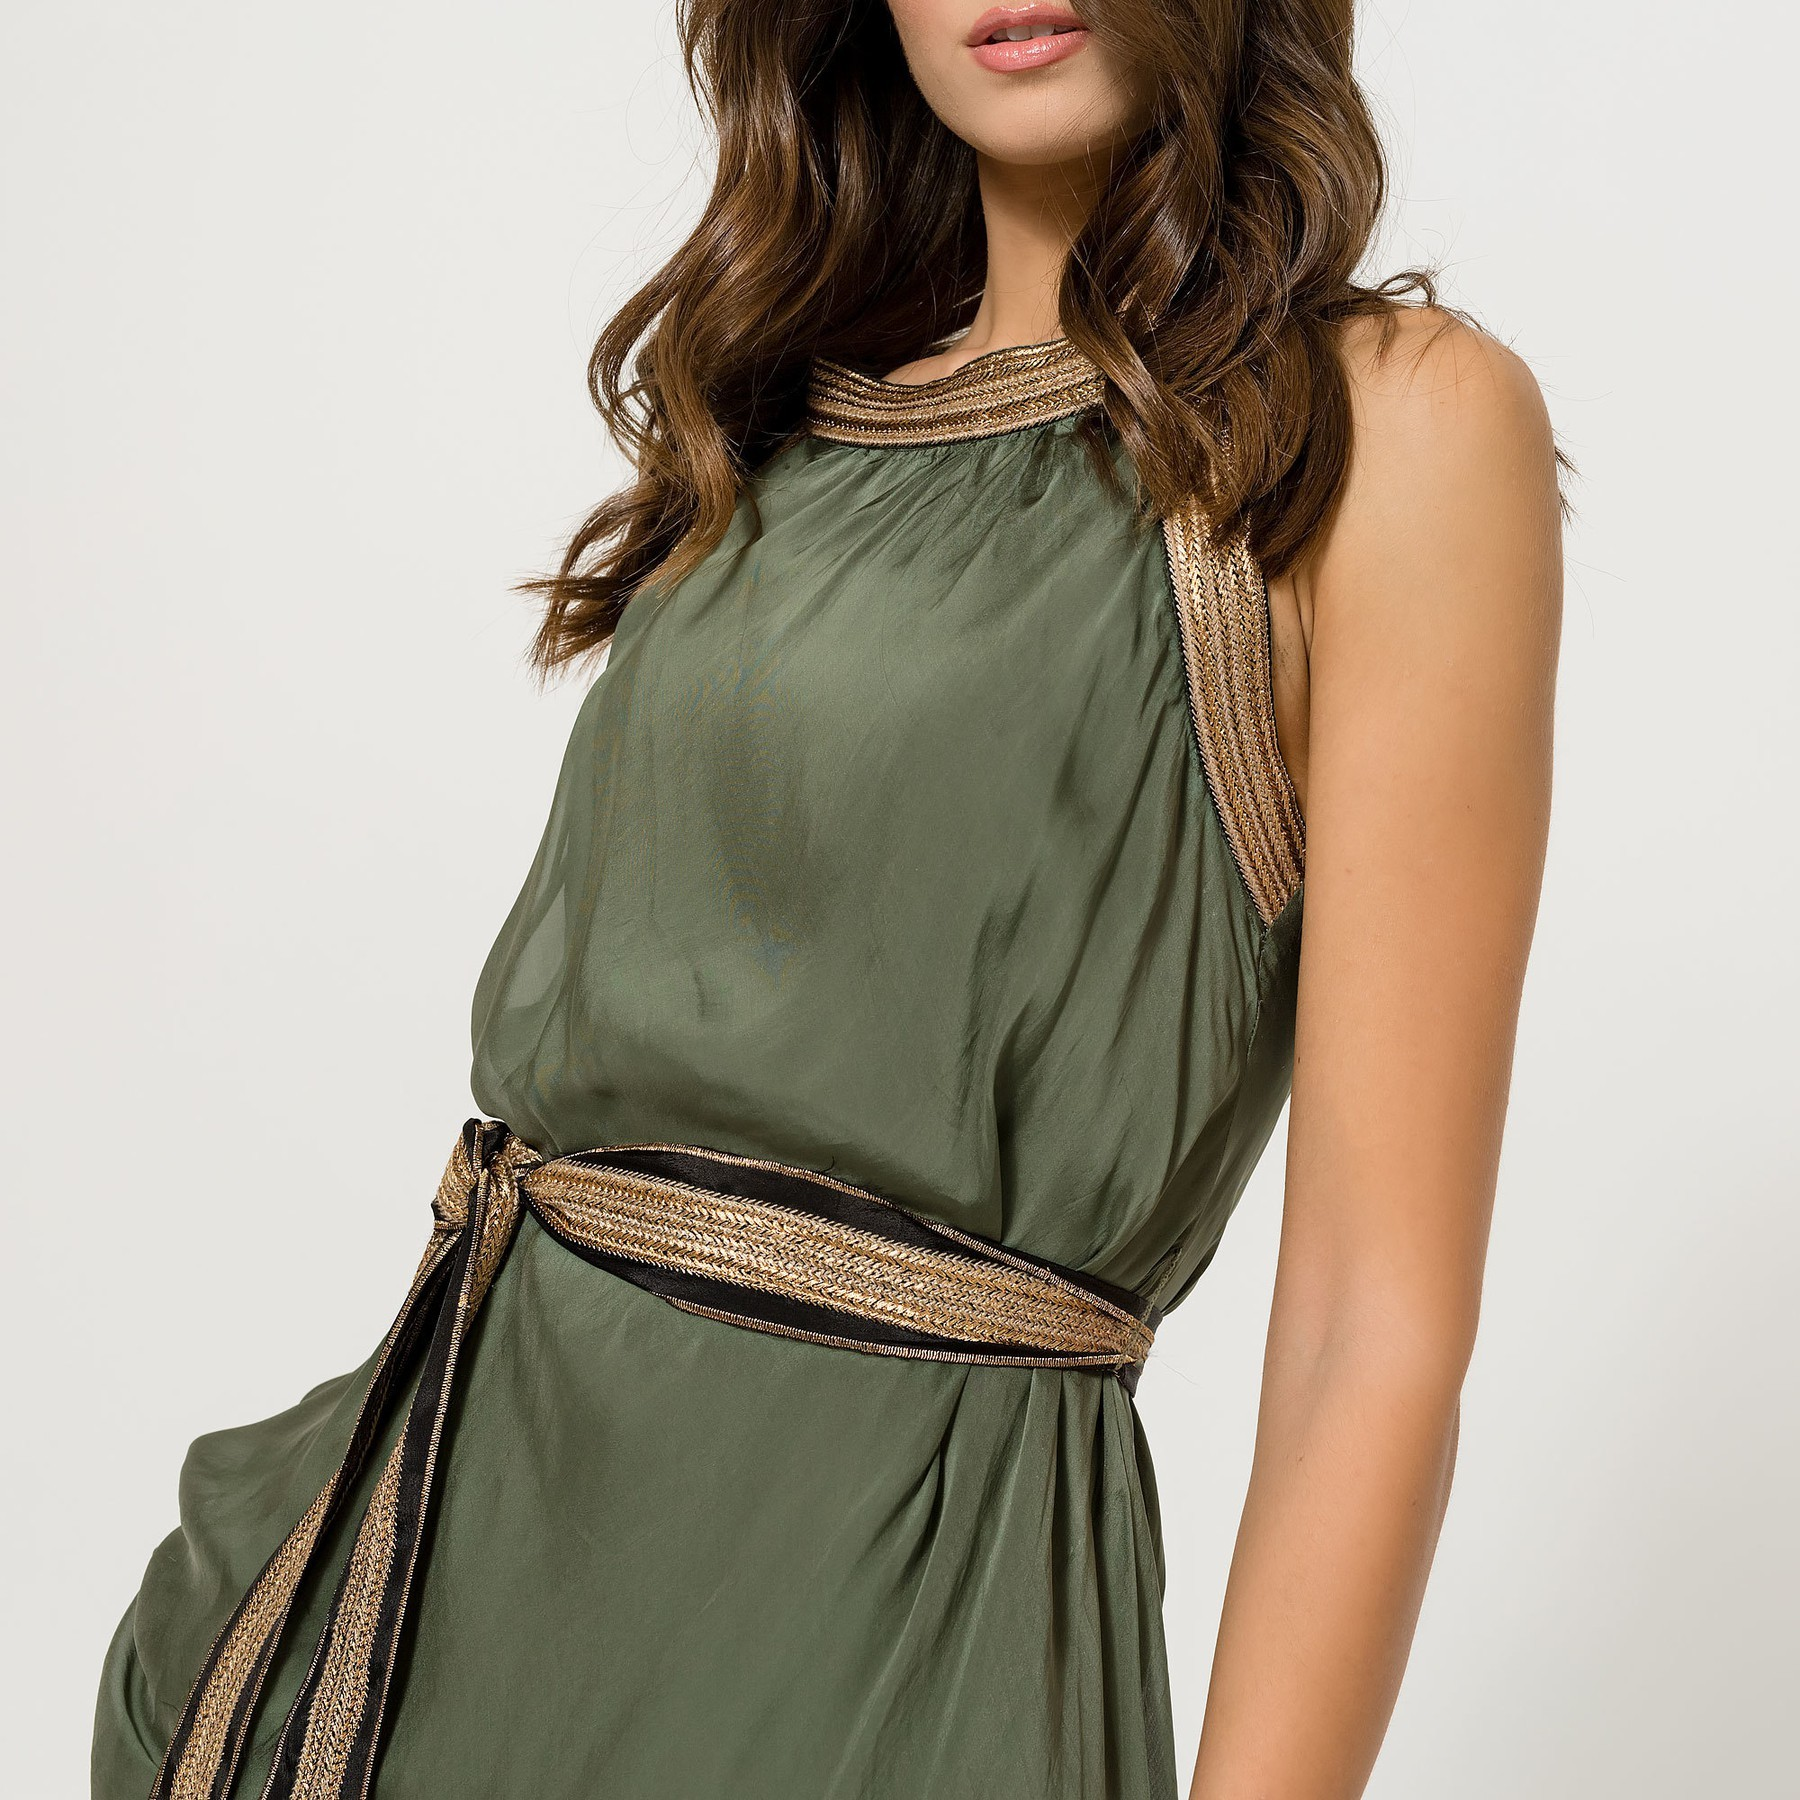 Khaki Green top with Gold Straps and Belt